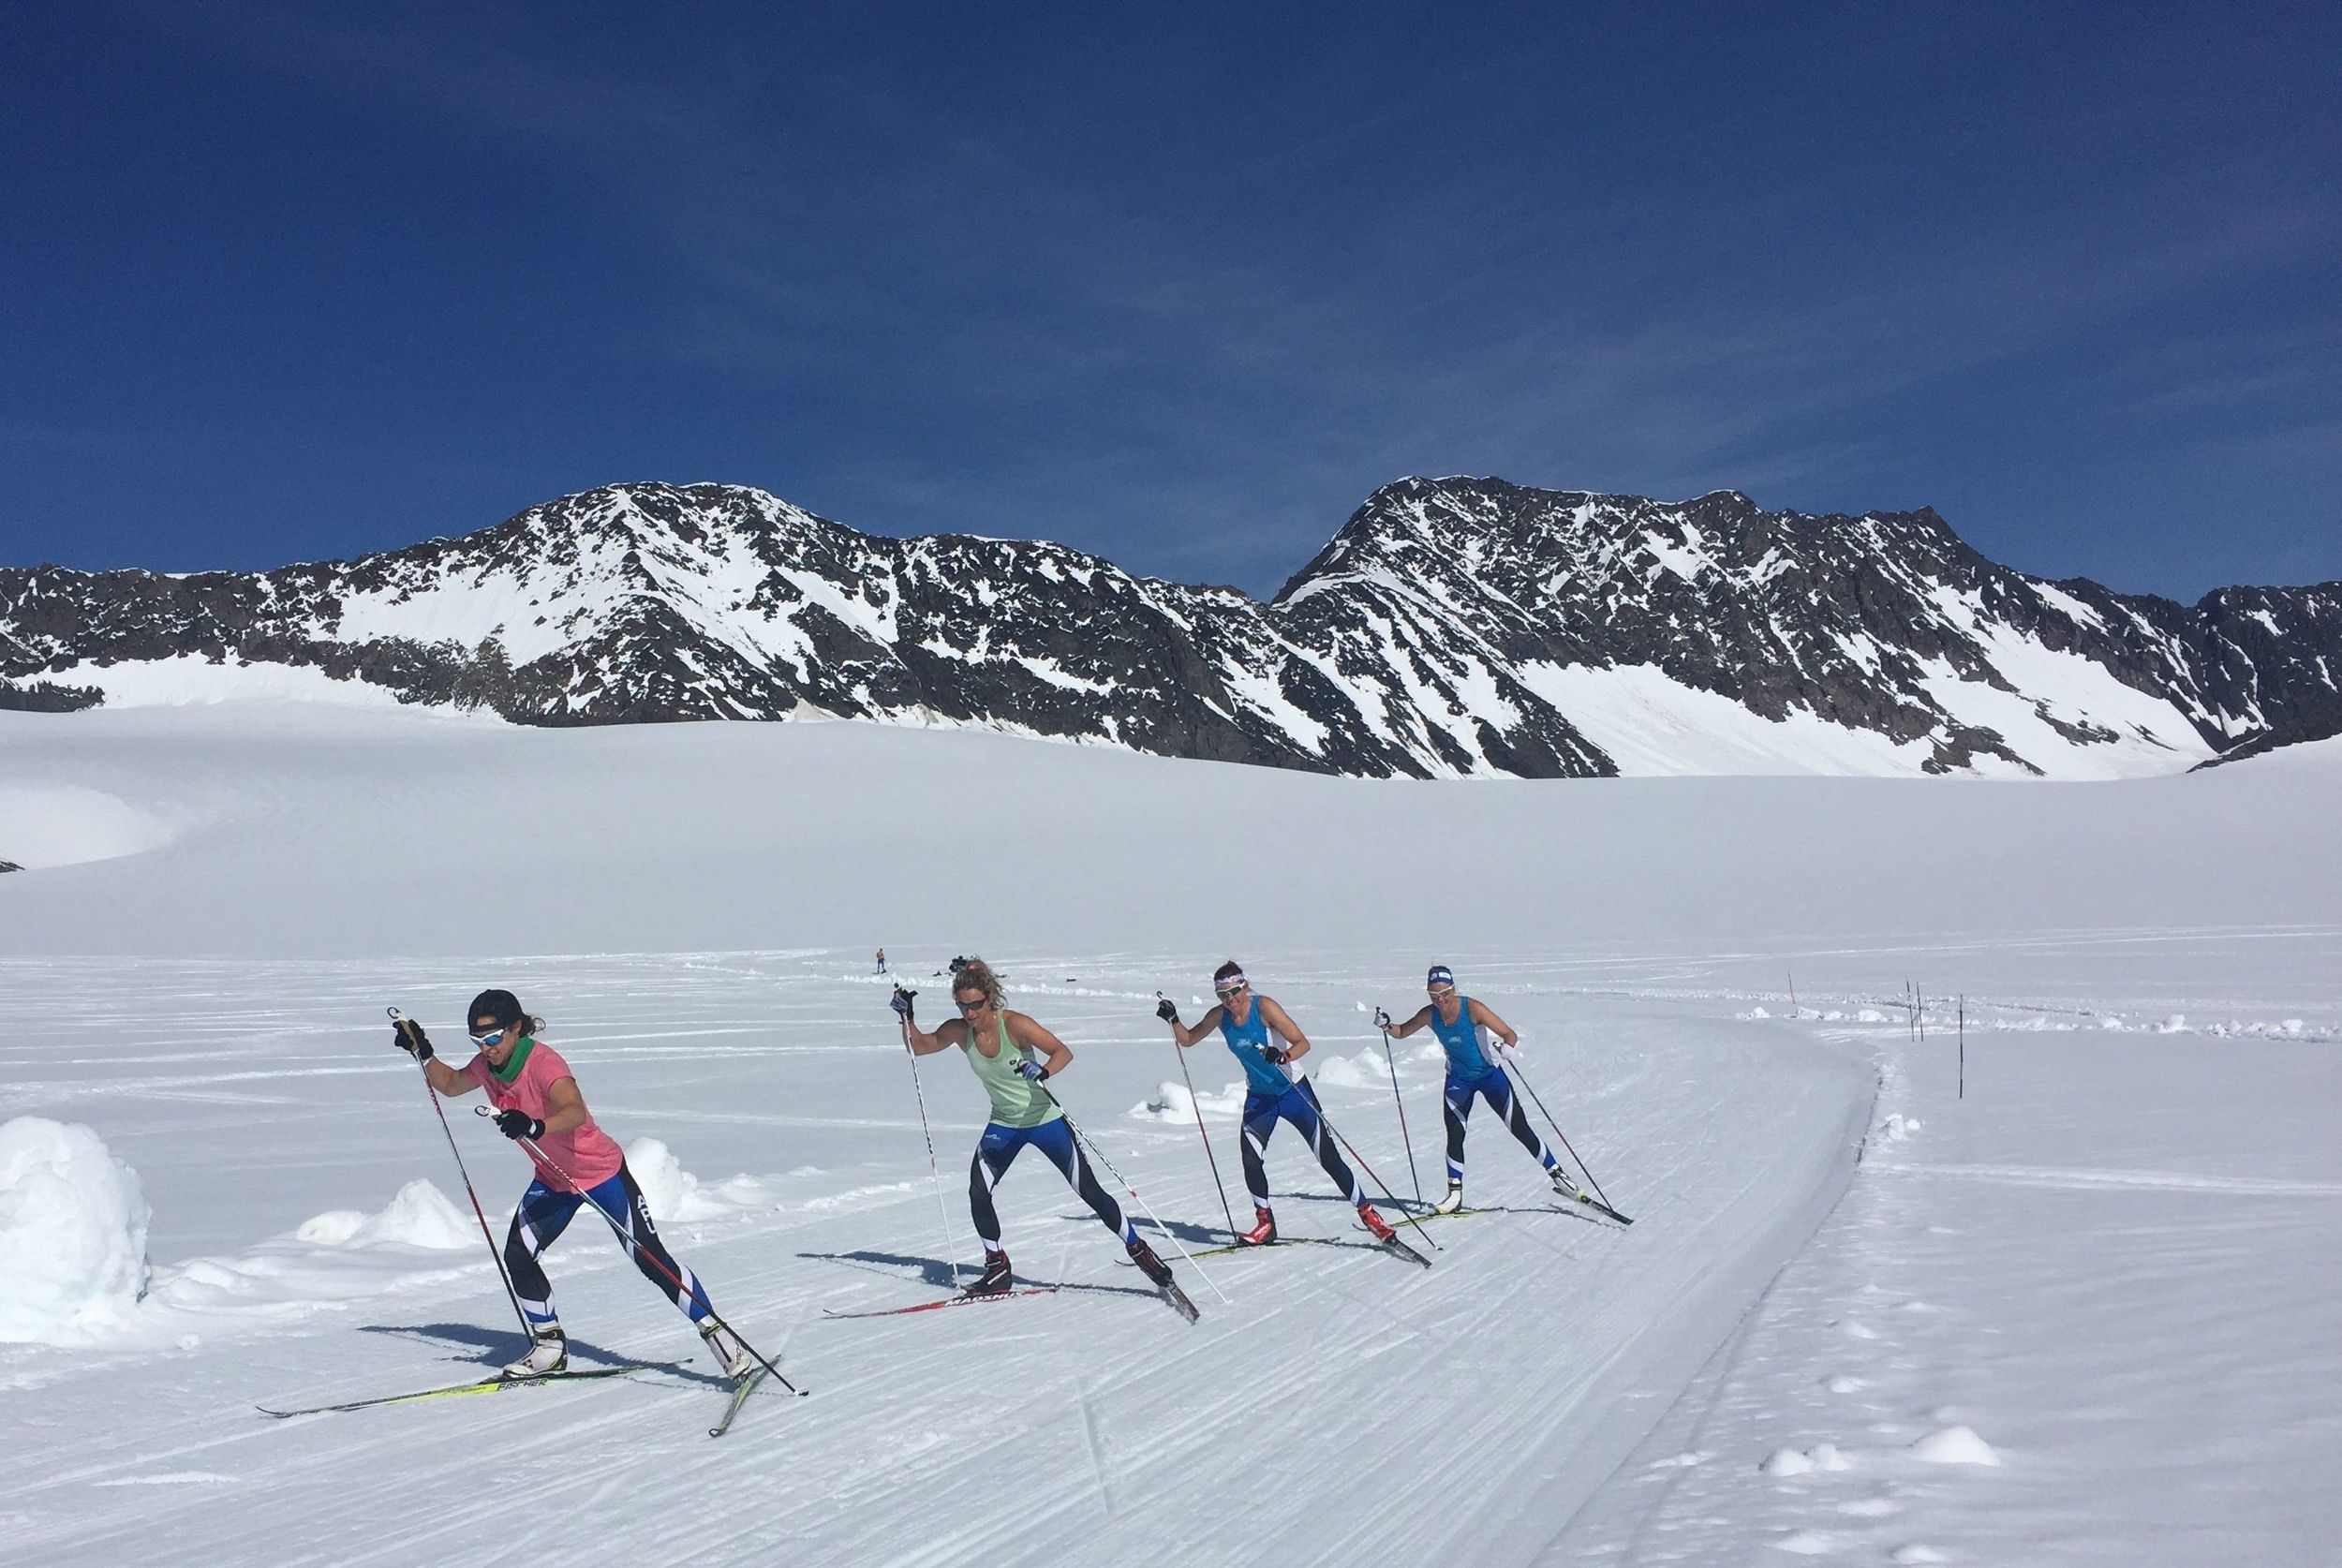 I am pretty lucky to have an team of woman to train with! It makes the kilometers and hours so much more fun!